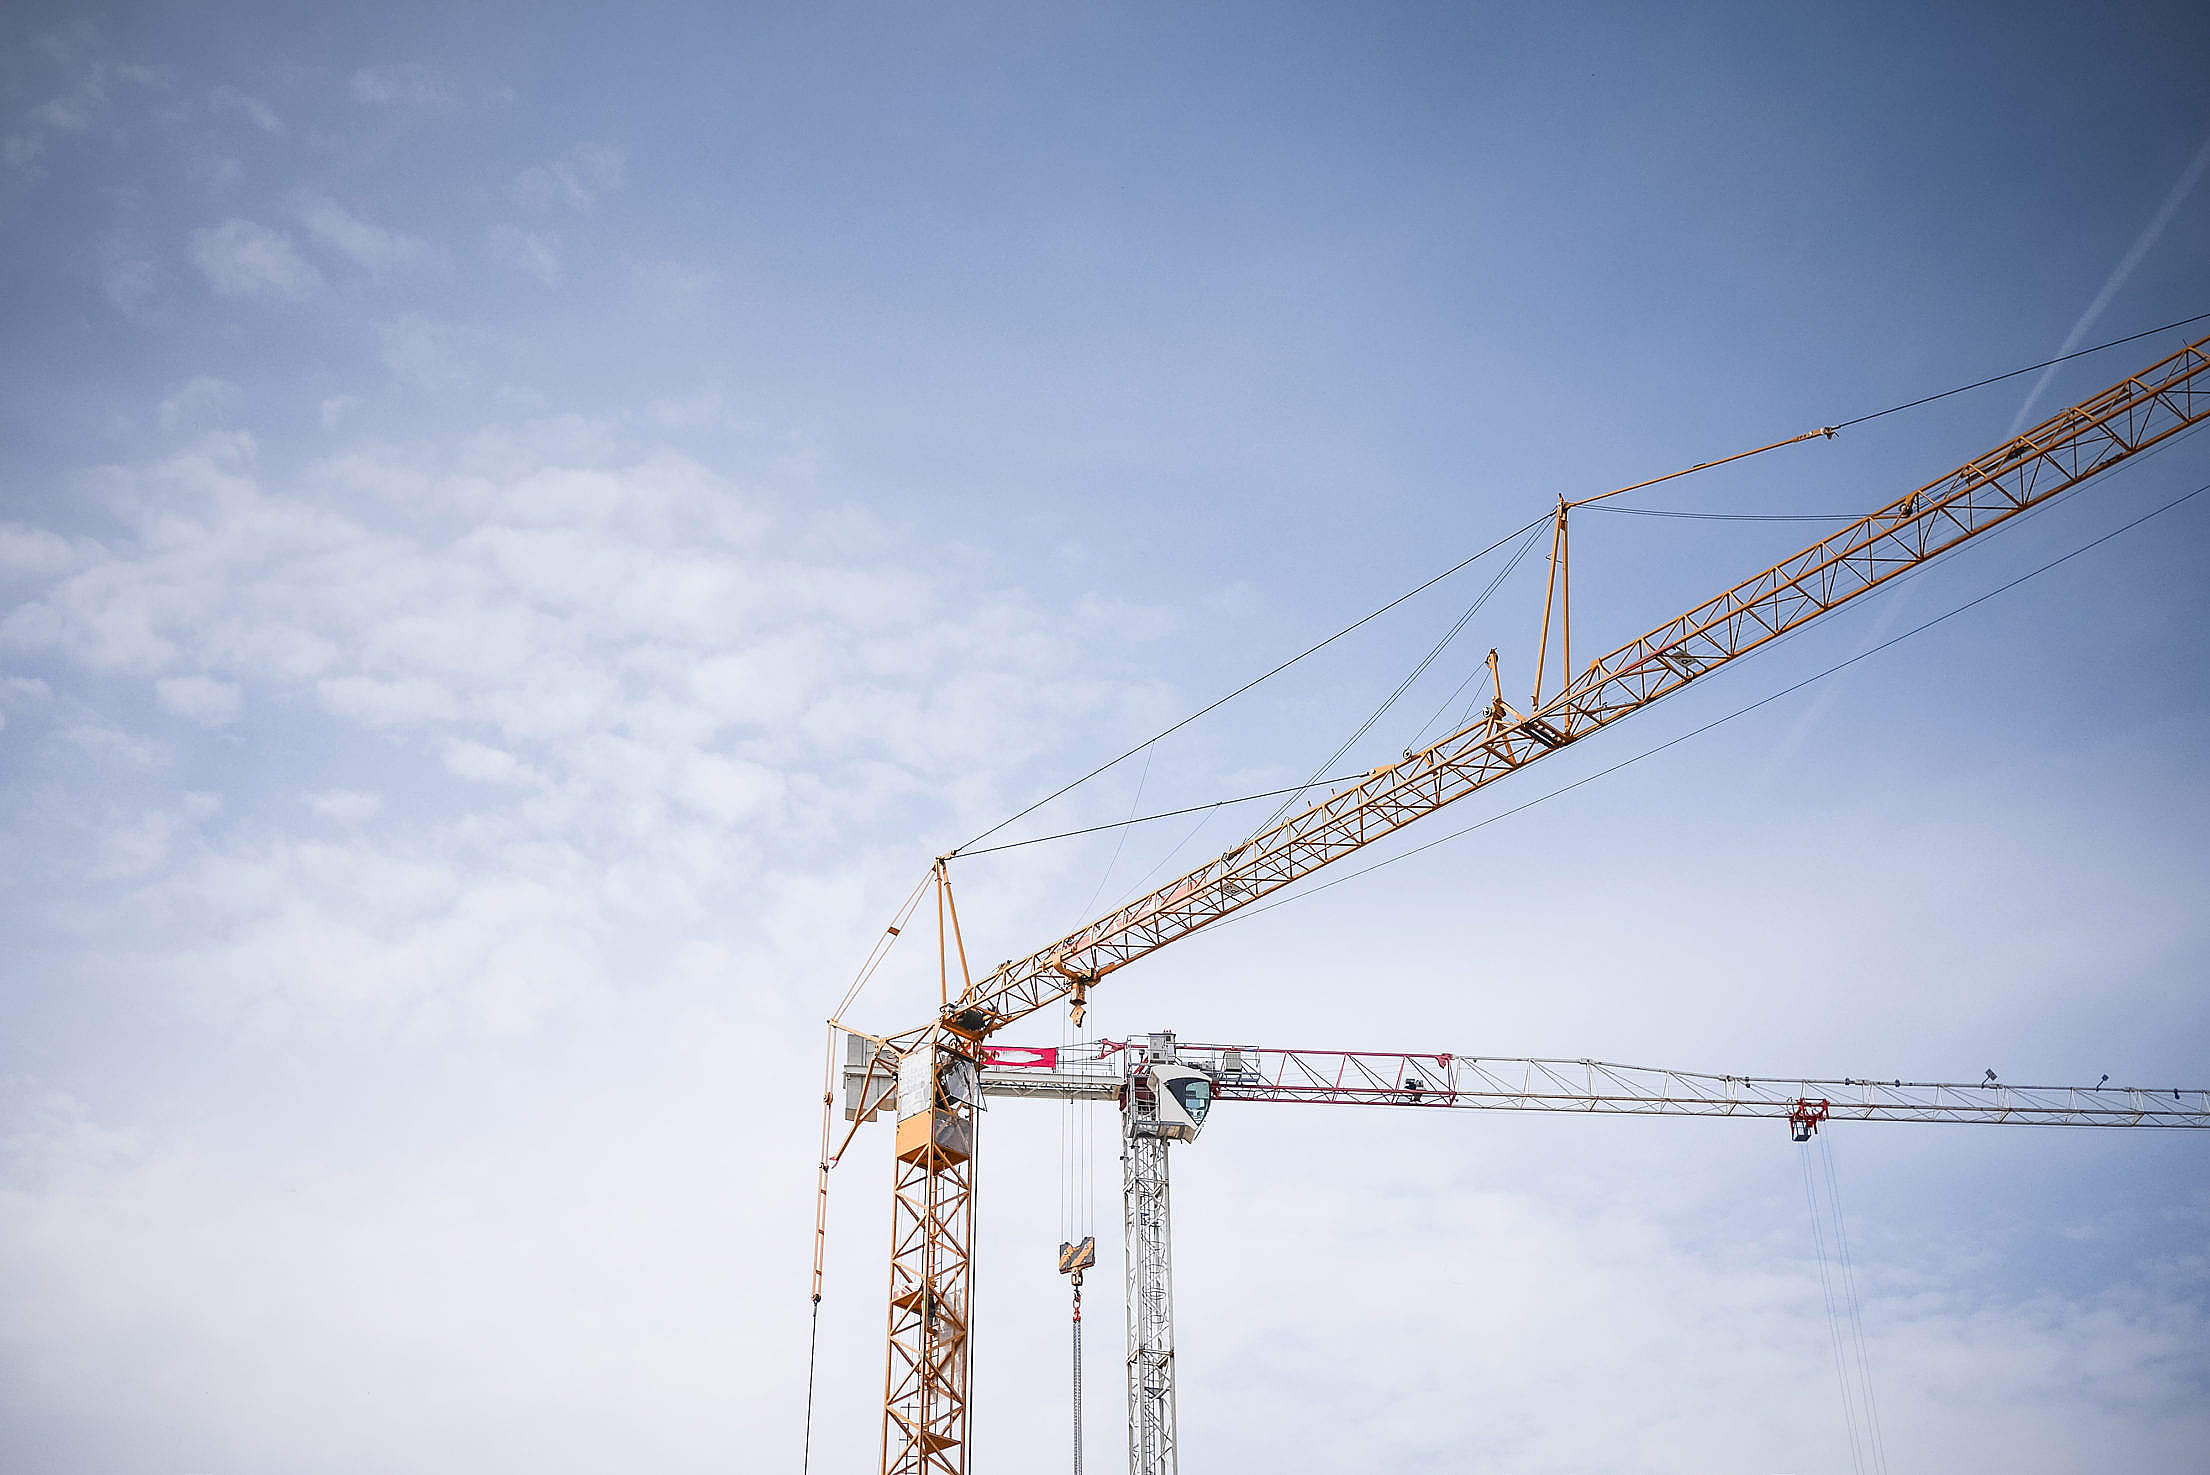 Big Lifting Cranes at Construction Site Free Stock Photo